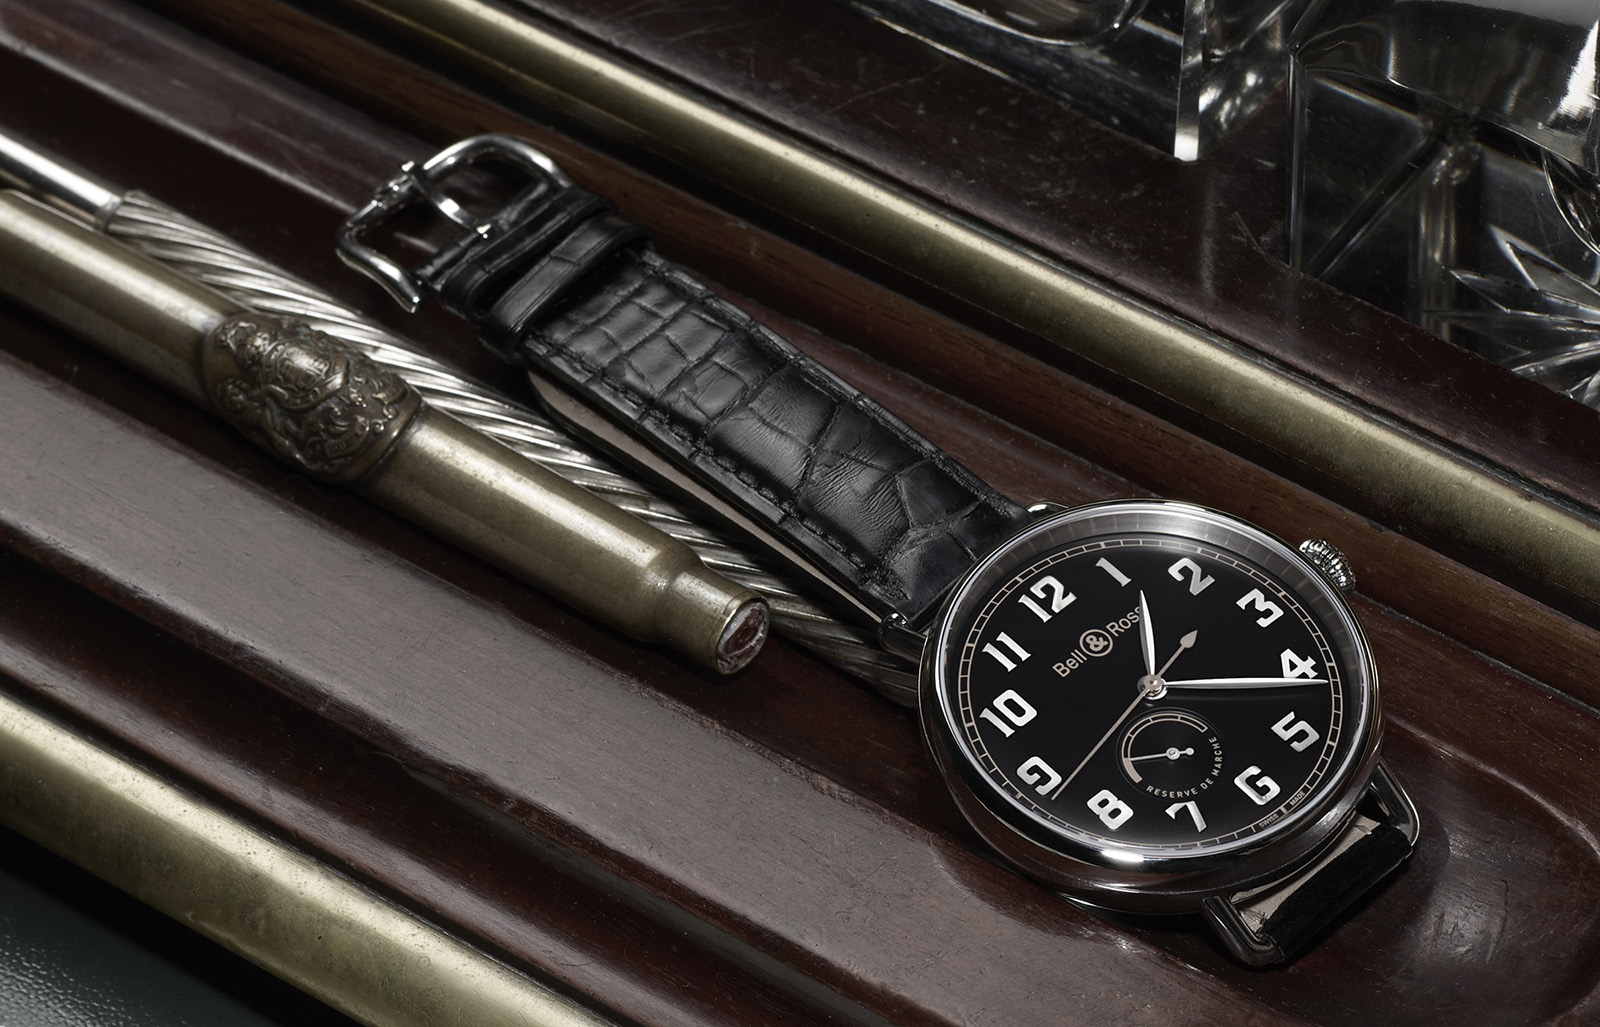 Bell & Ross Vintage WW1-97 Heritge